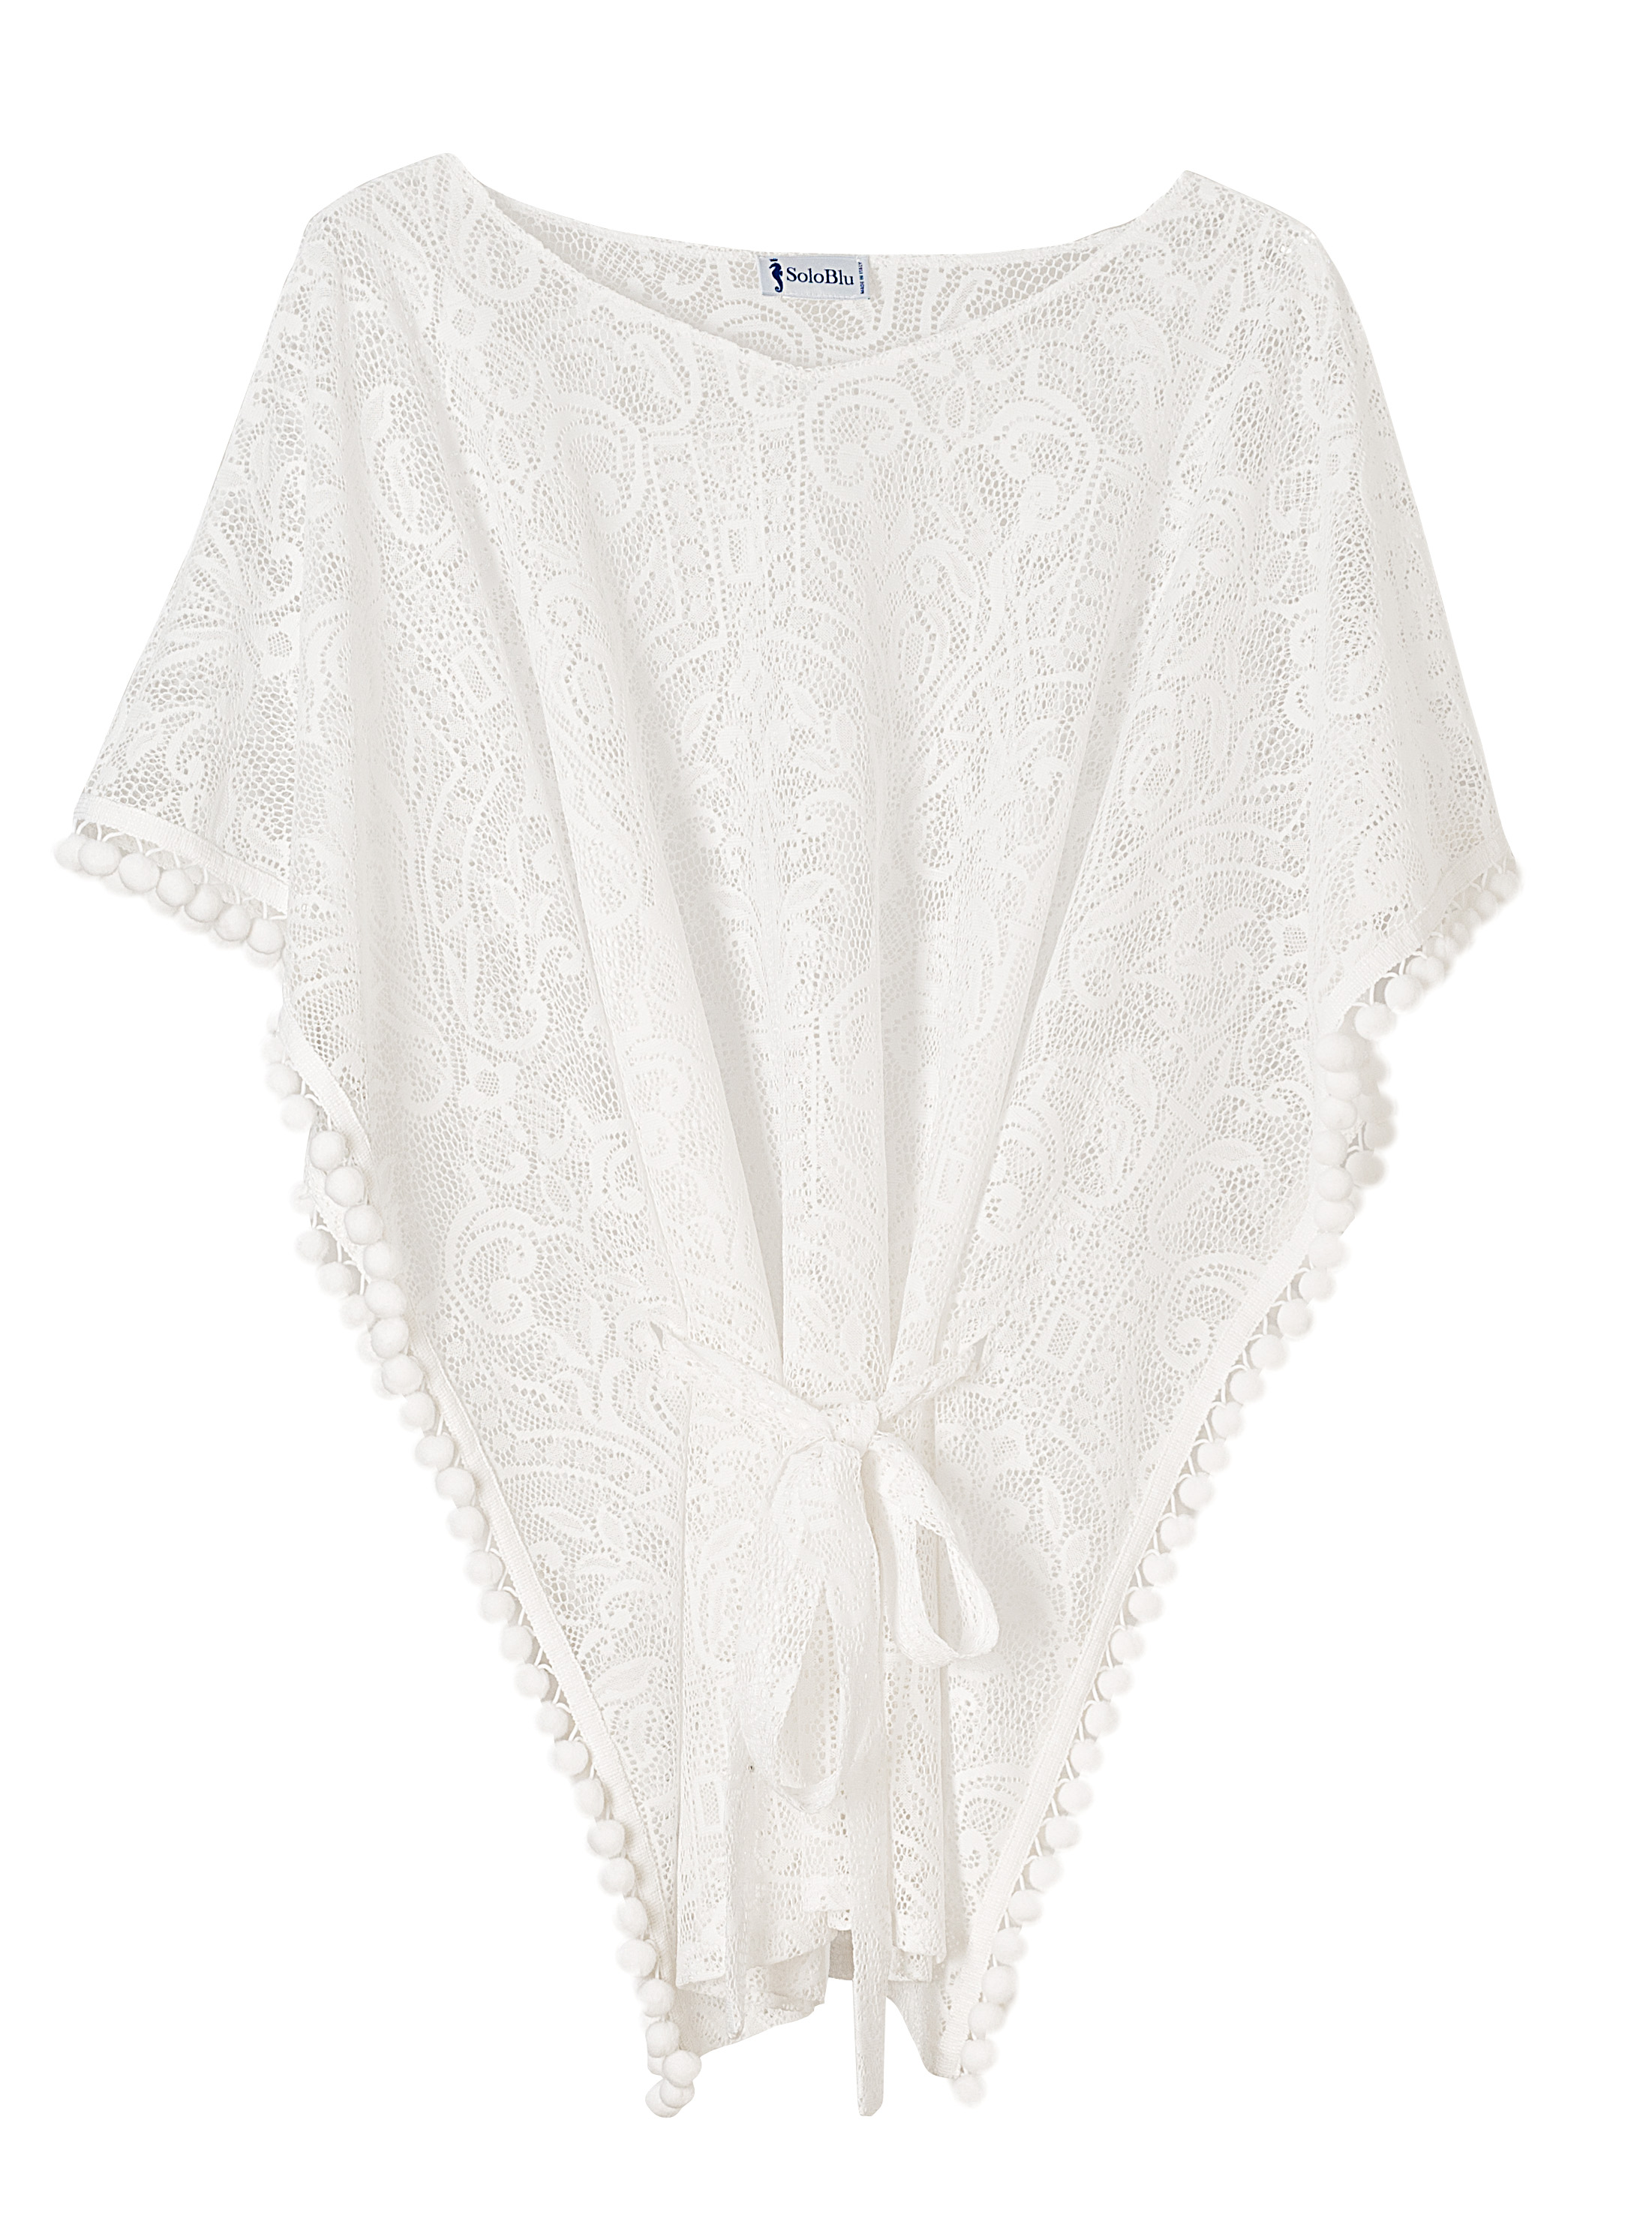 Casacca Pizzo Bianco-7106